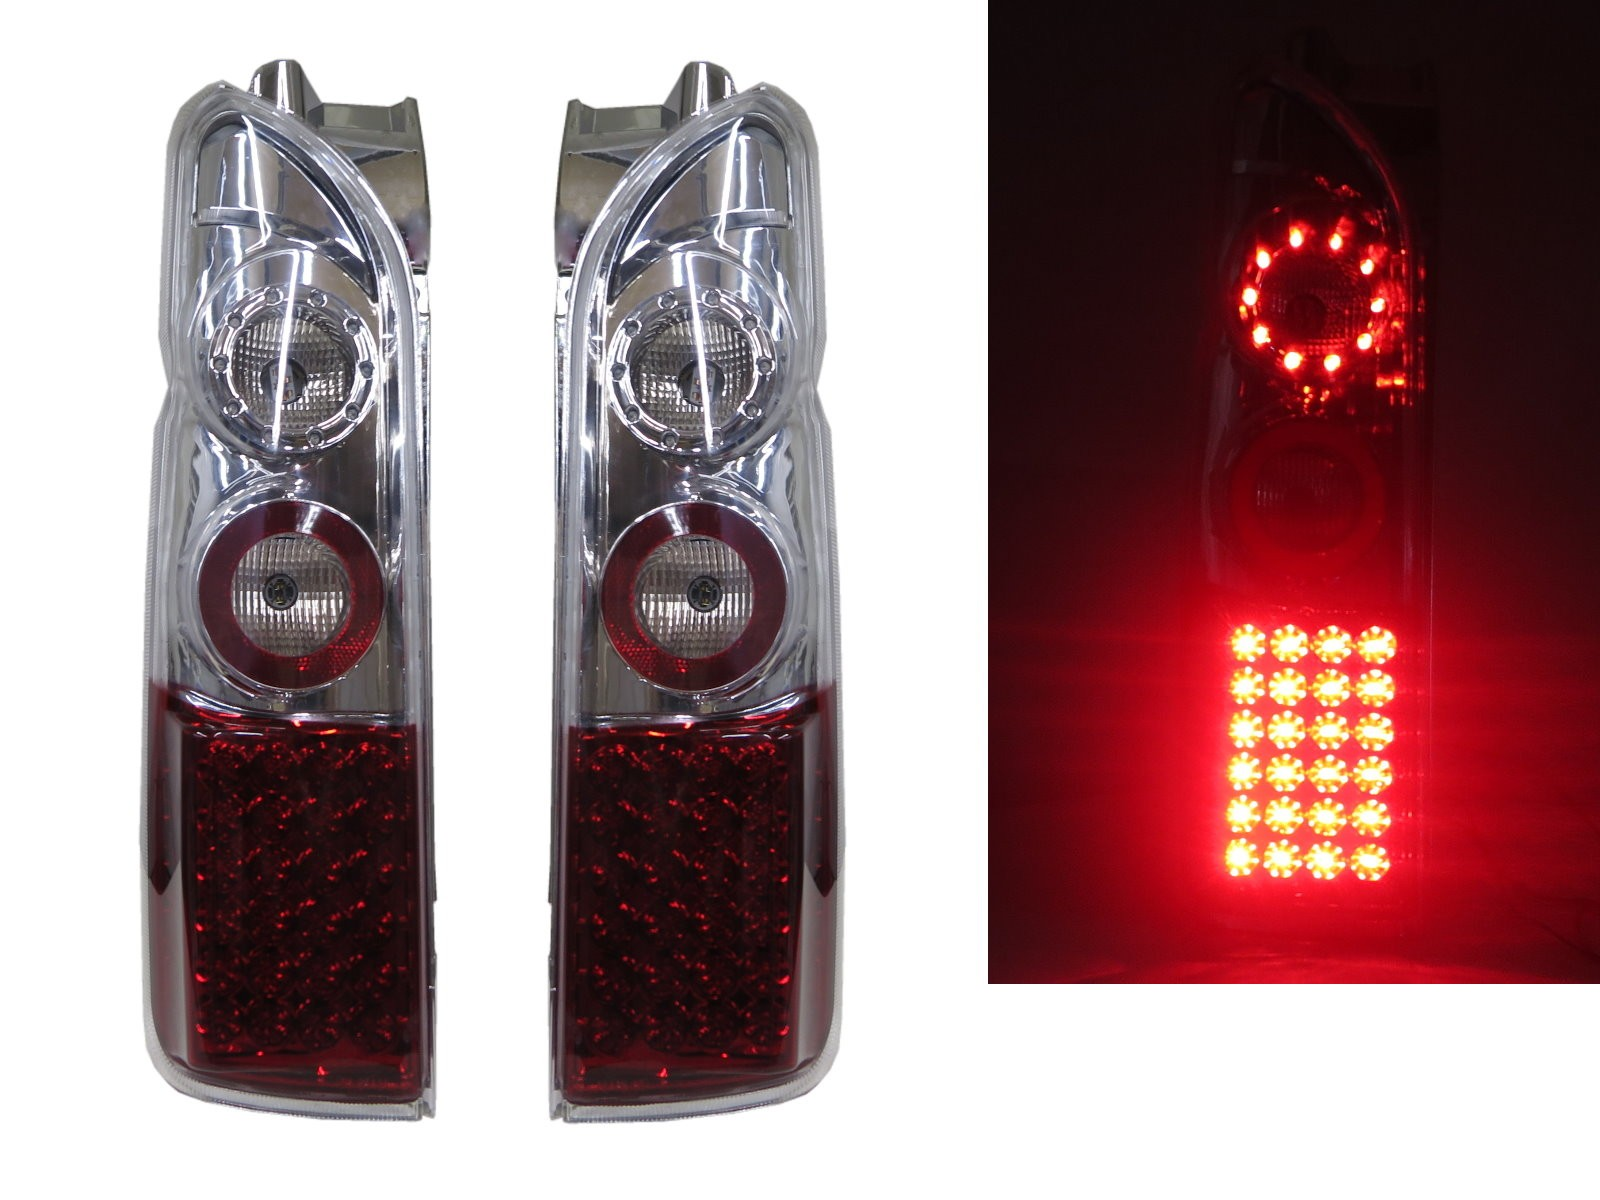 CrazyTheGod HIACE H200 First generation 2005-2011 VAN 3D/4D LED Tail Rear Light Red/White for TOYOTA